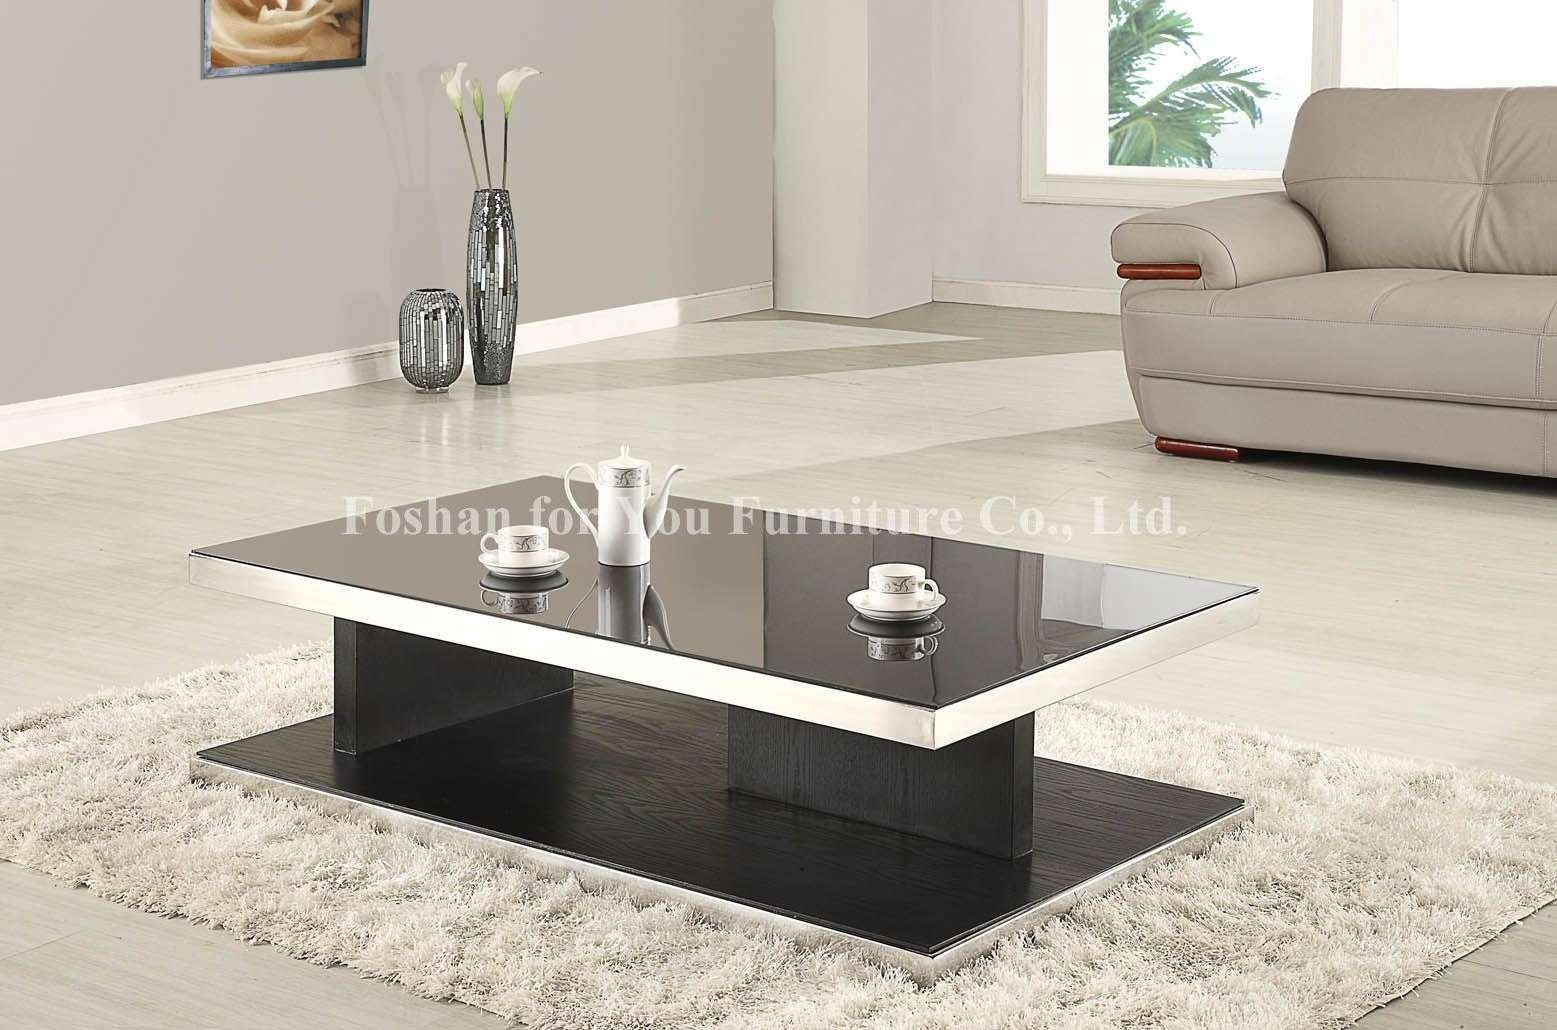 Favorite Stone And Glass Coffee Tables In Living Room Coffee Table Modern White Stone Sleek Style Vases Red (View 9 of 20)